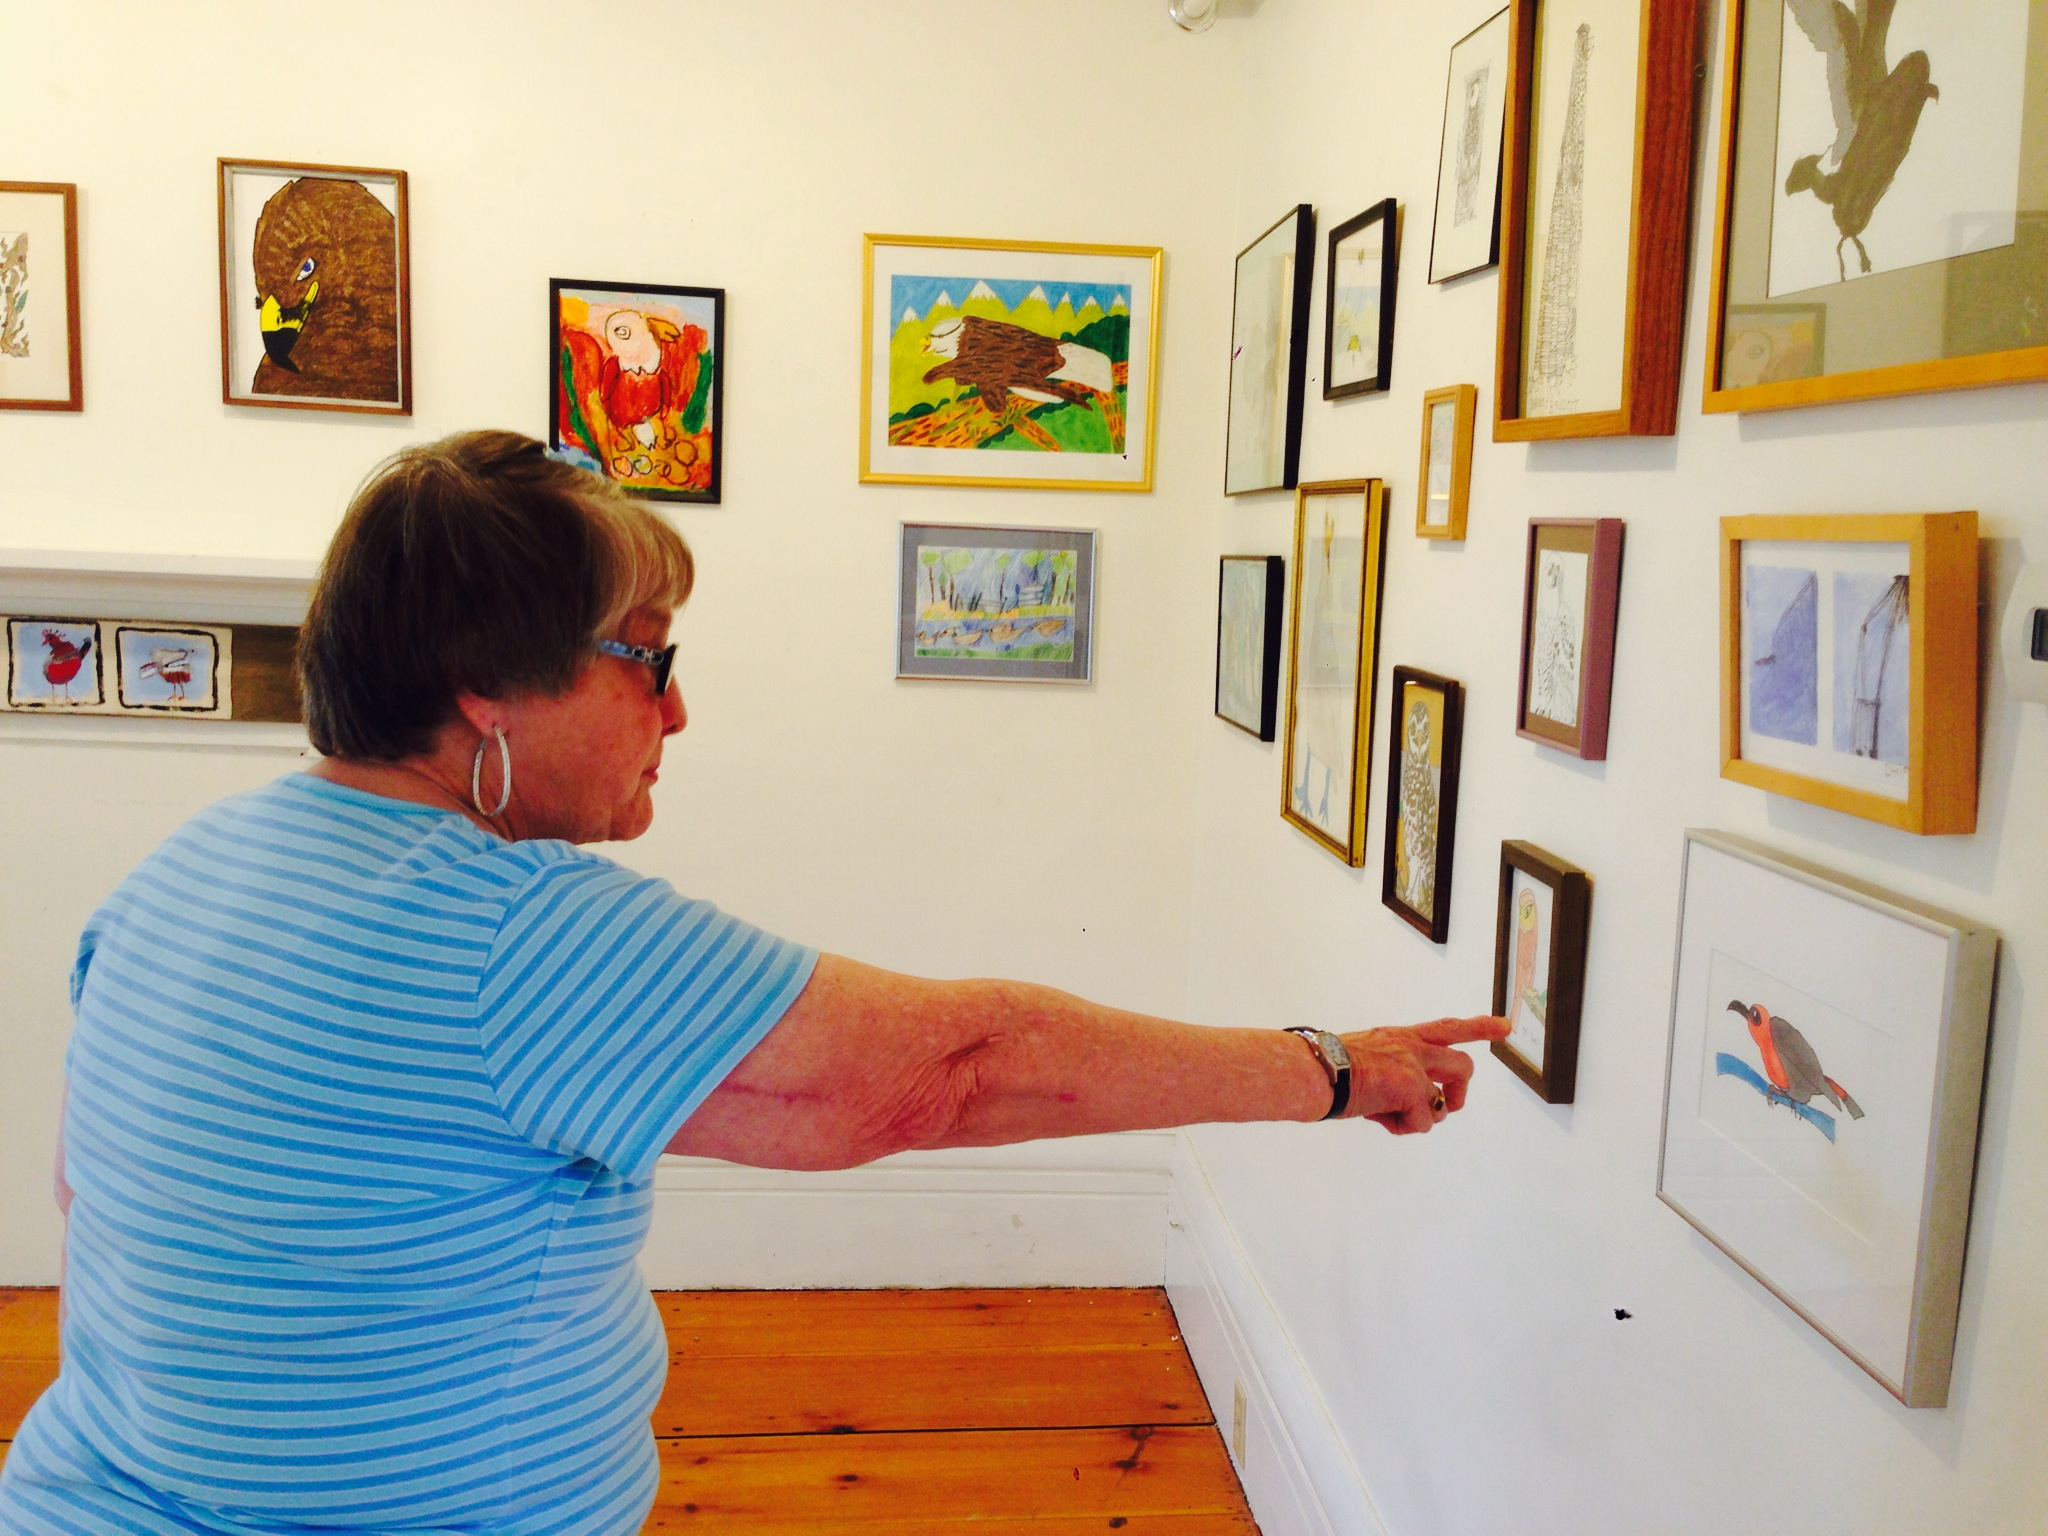 Bonnie in the Put a Bird On It Show, admiring other artists' work!